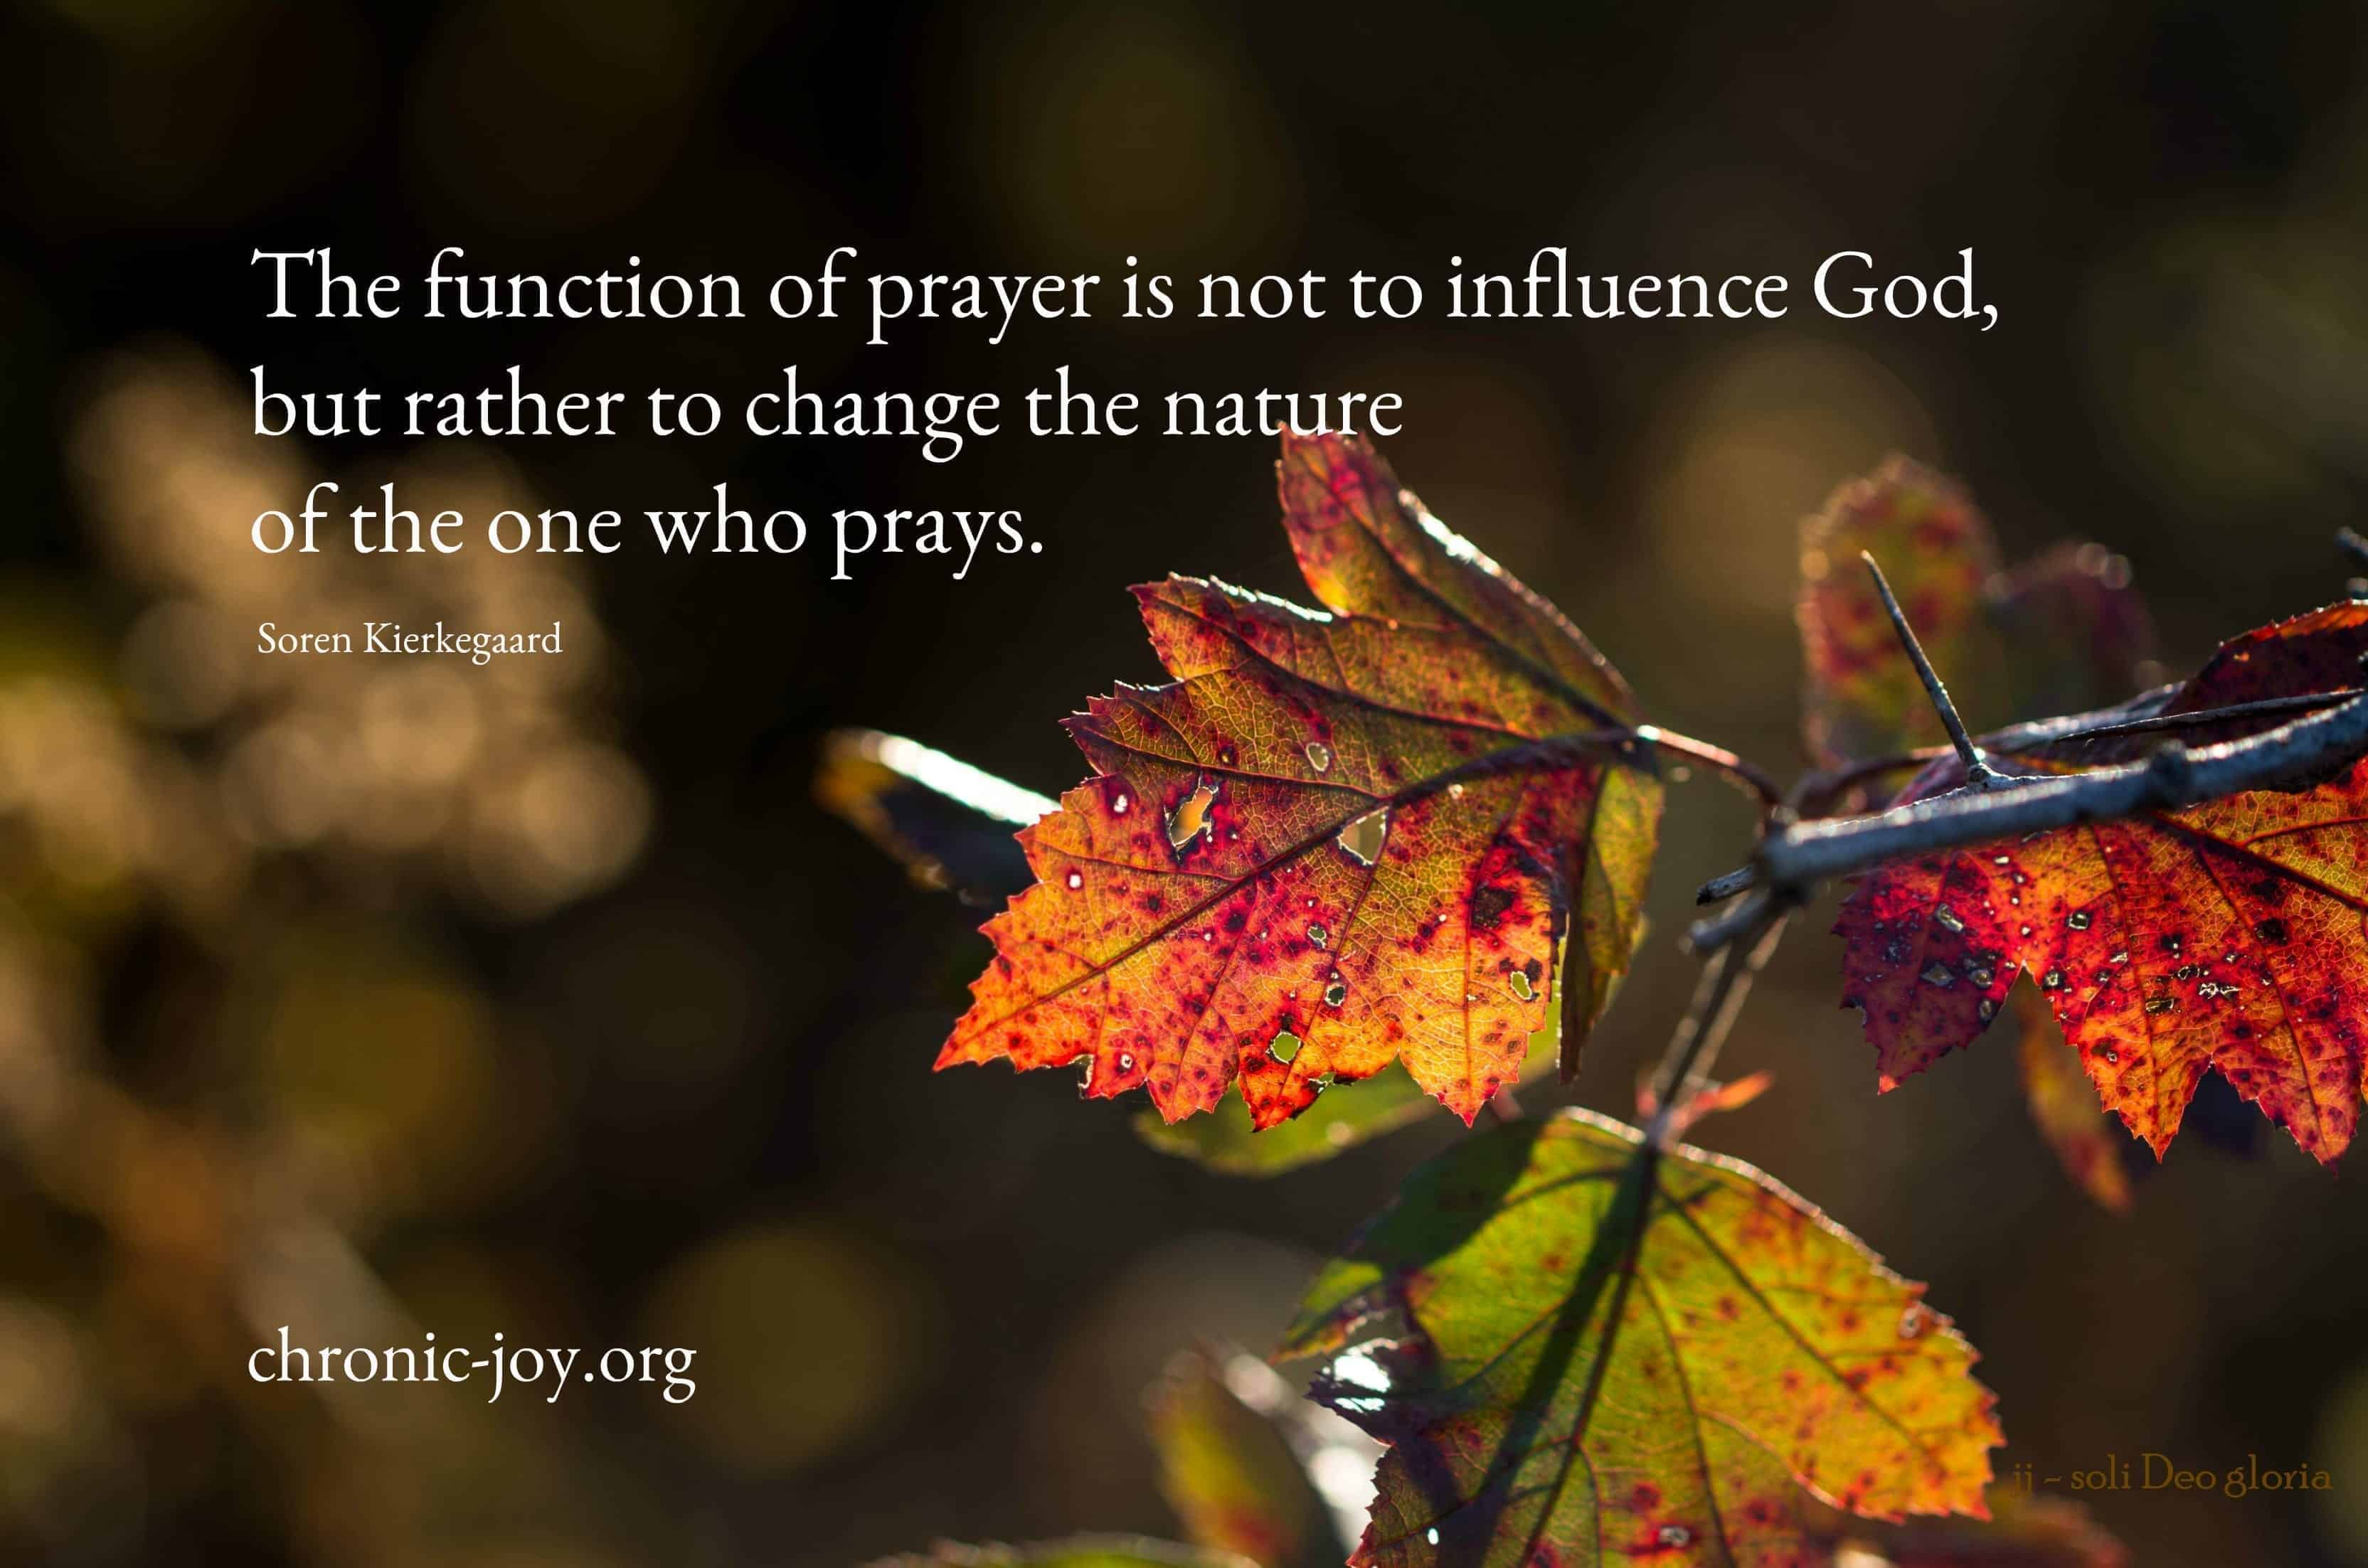 The One Who Prays